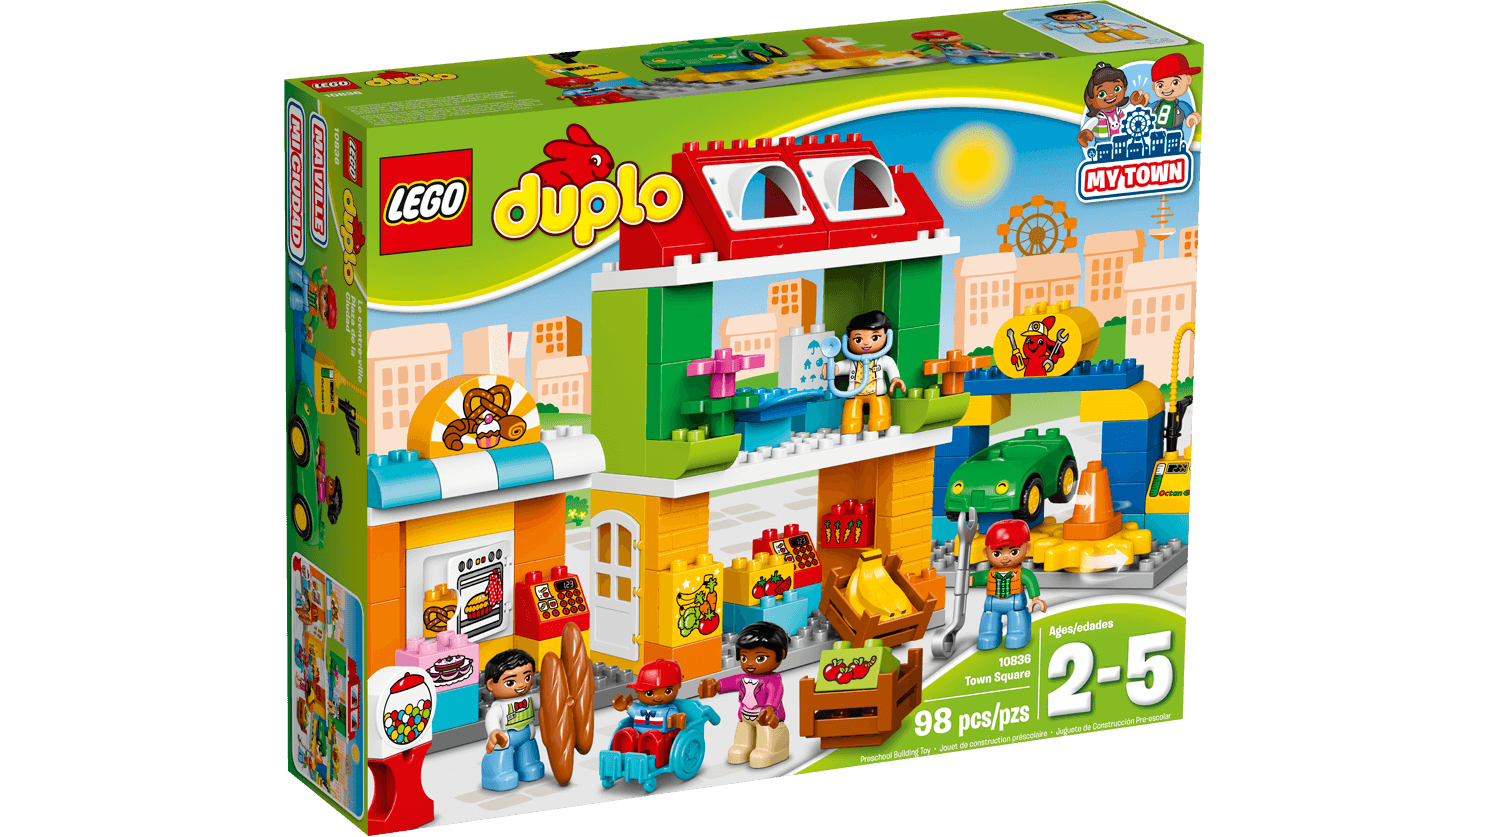 Town Square Presents For Albie Pinterest Lego Duplo Town Lego